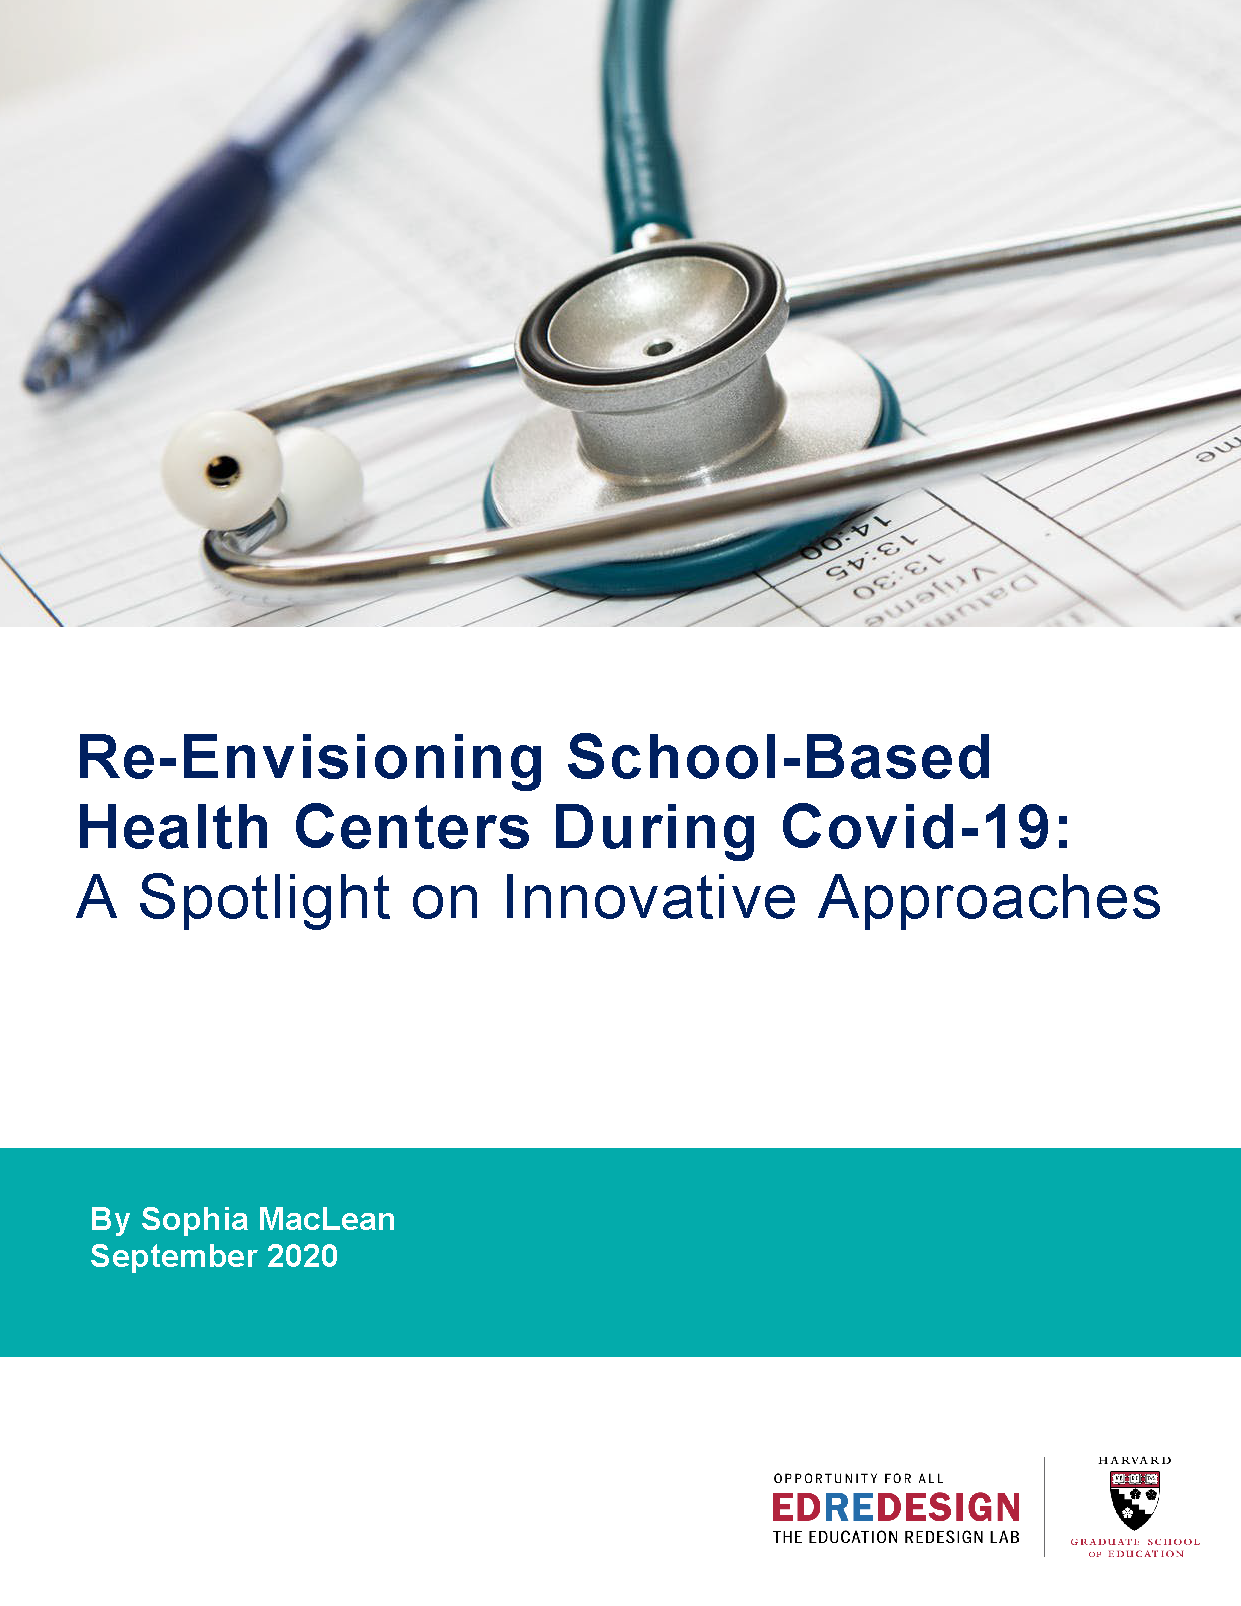 Re-Envisioning School-Based Health Centers During Covid-19:  A Spotlight on Innovative Approaches Guide